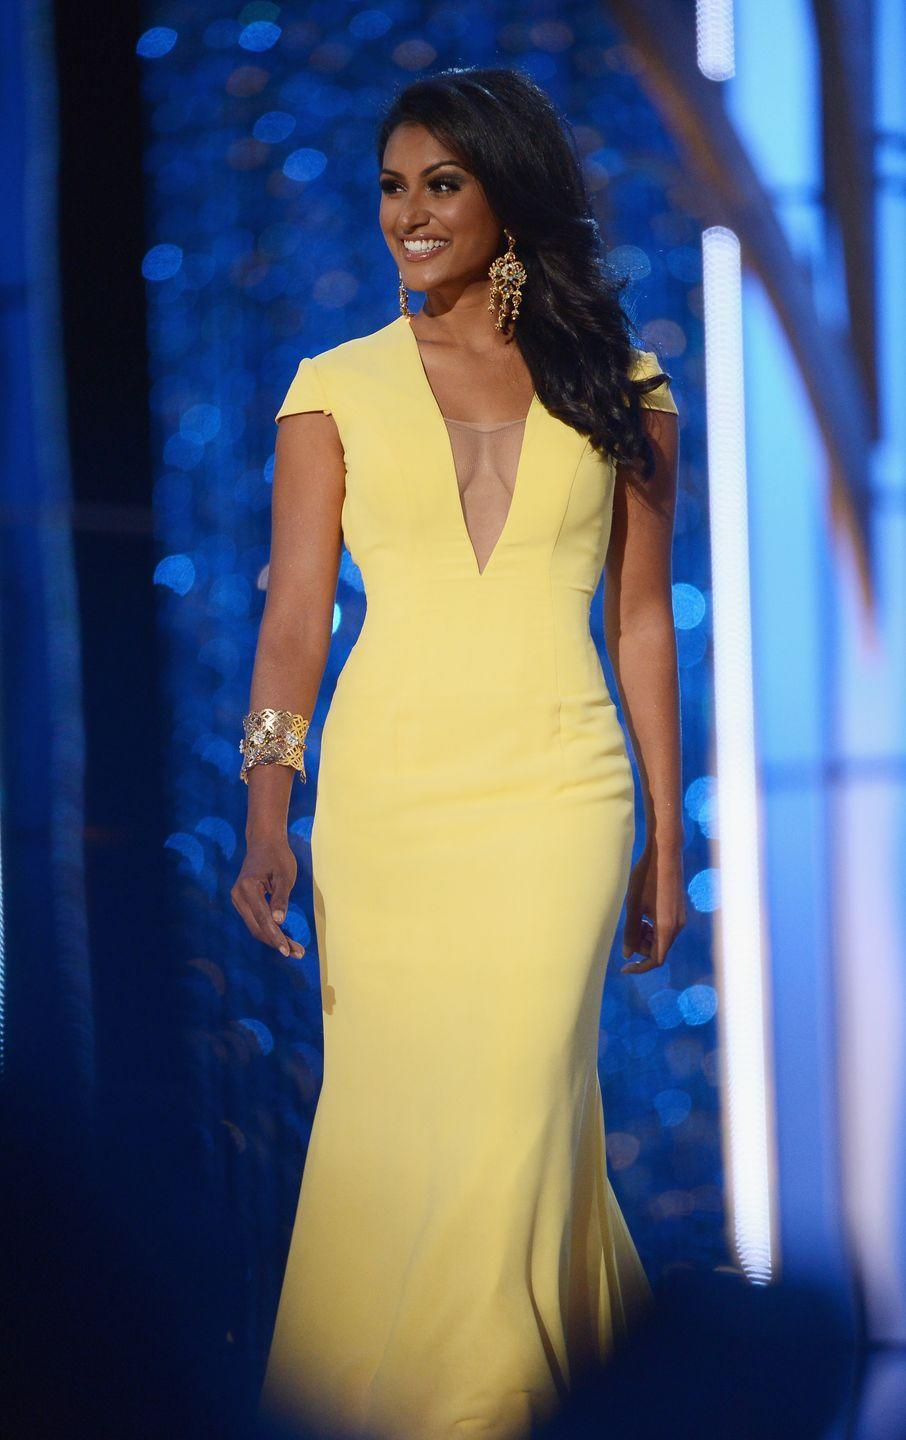 <p>Former Miss New York, Nina Davuluri, opted for a low-cut neck and a bold color. Her chunky bracelet and statement earrings added a touch of extra glam to the look. </p>